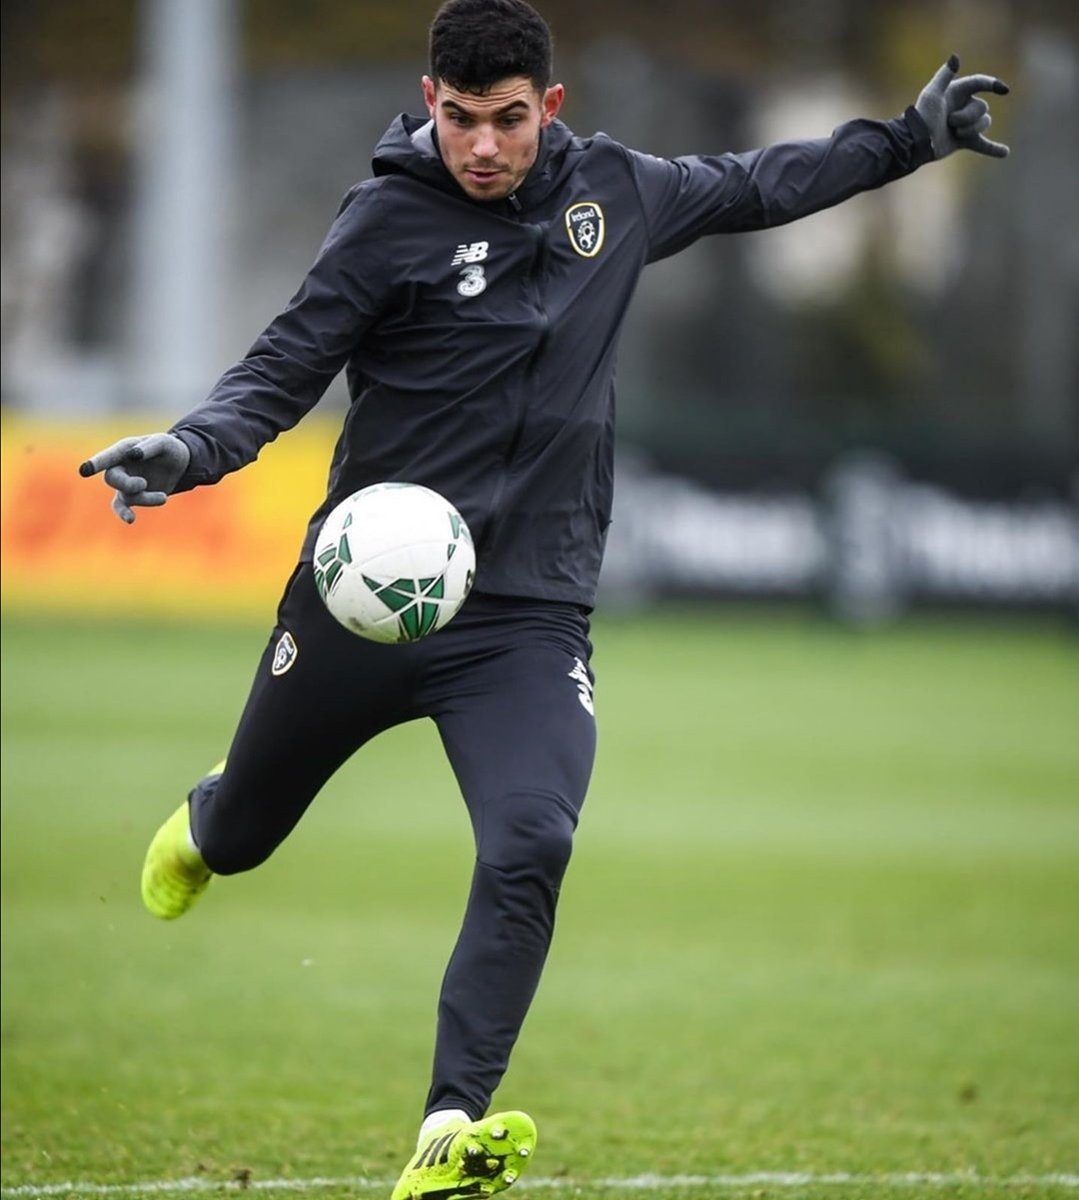 *****JOHN EGAN ACADEMY*****We are back in action tomorrow from 6-7pm in the Barrs.Looking forward to seeing everyone as always 💚💚#footballdevelopment #footballfamily #fun #greenwoodf #gfc #fai #structuredlearning #johneganacadamy  #realitybasedlearning @JohnEgan92